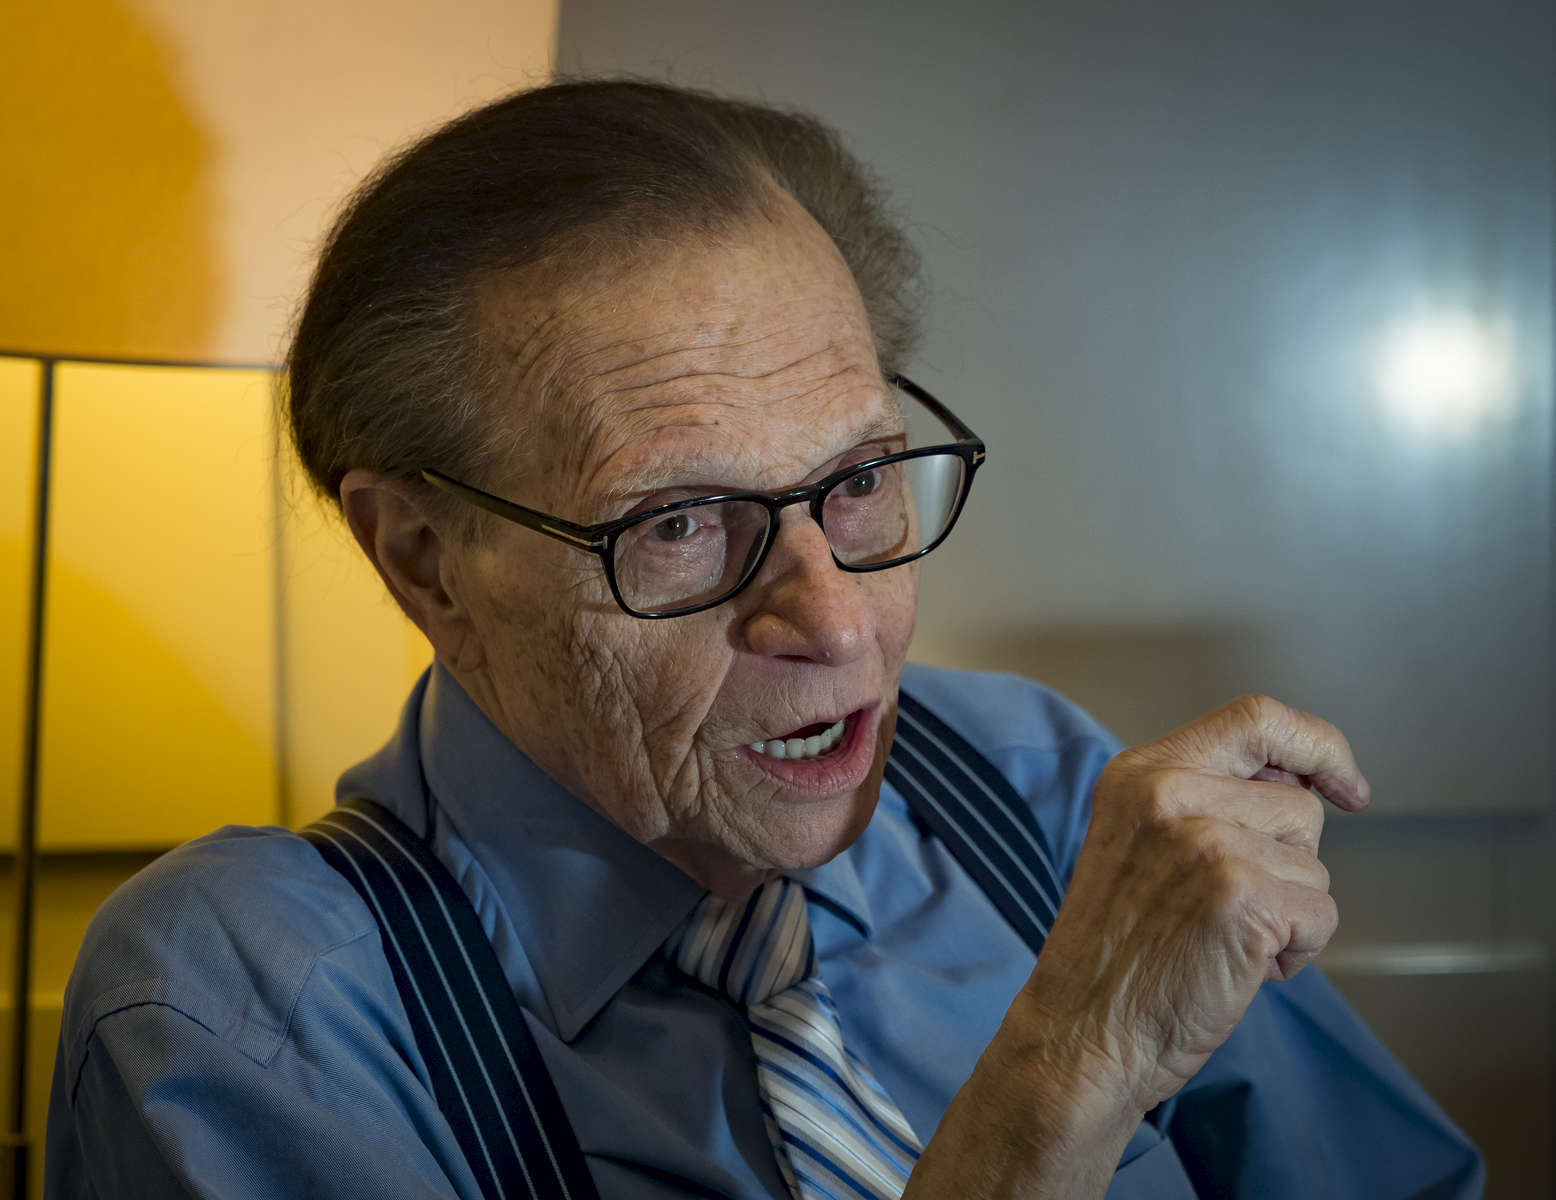 Larry King talks to the New York Daily News inside Regency Hotel located at 540 Park Avenue in Manhattan on Thursday, March 30, 2017.